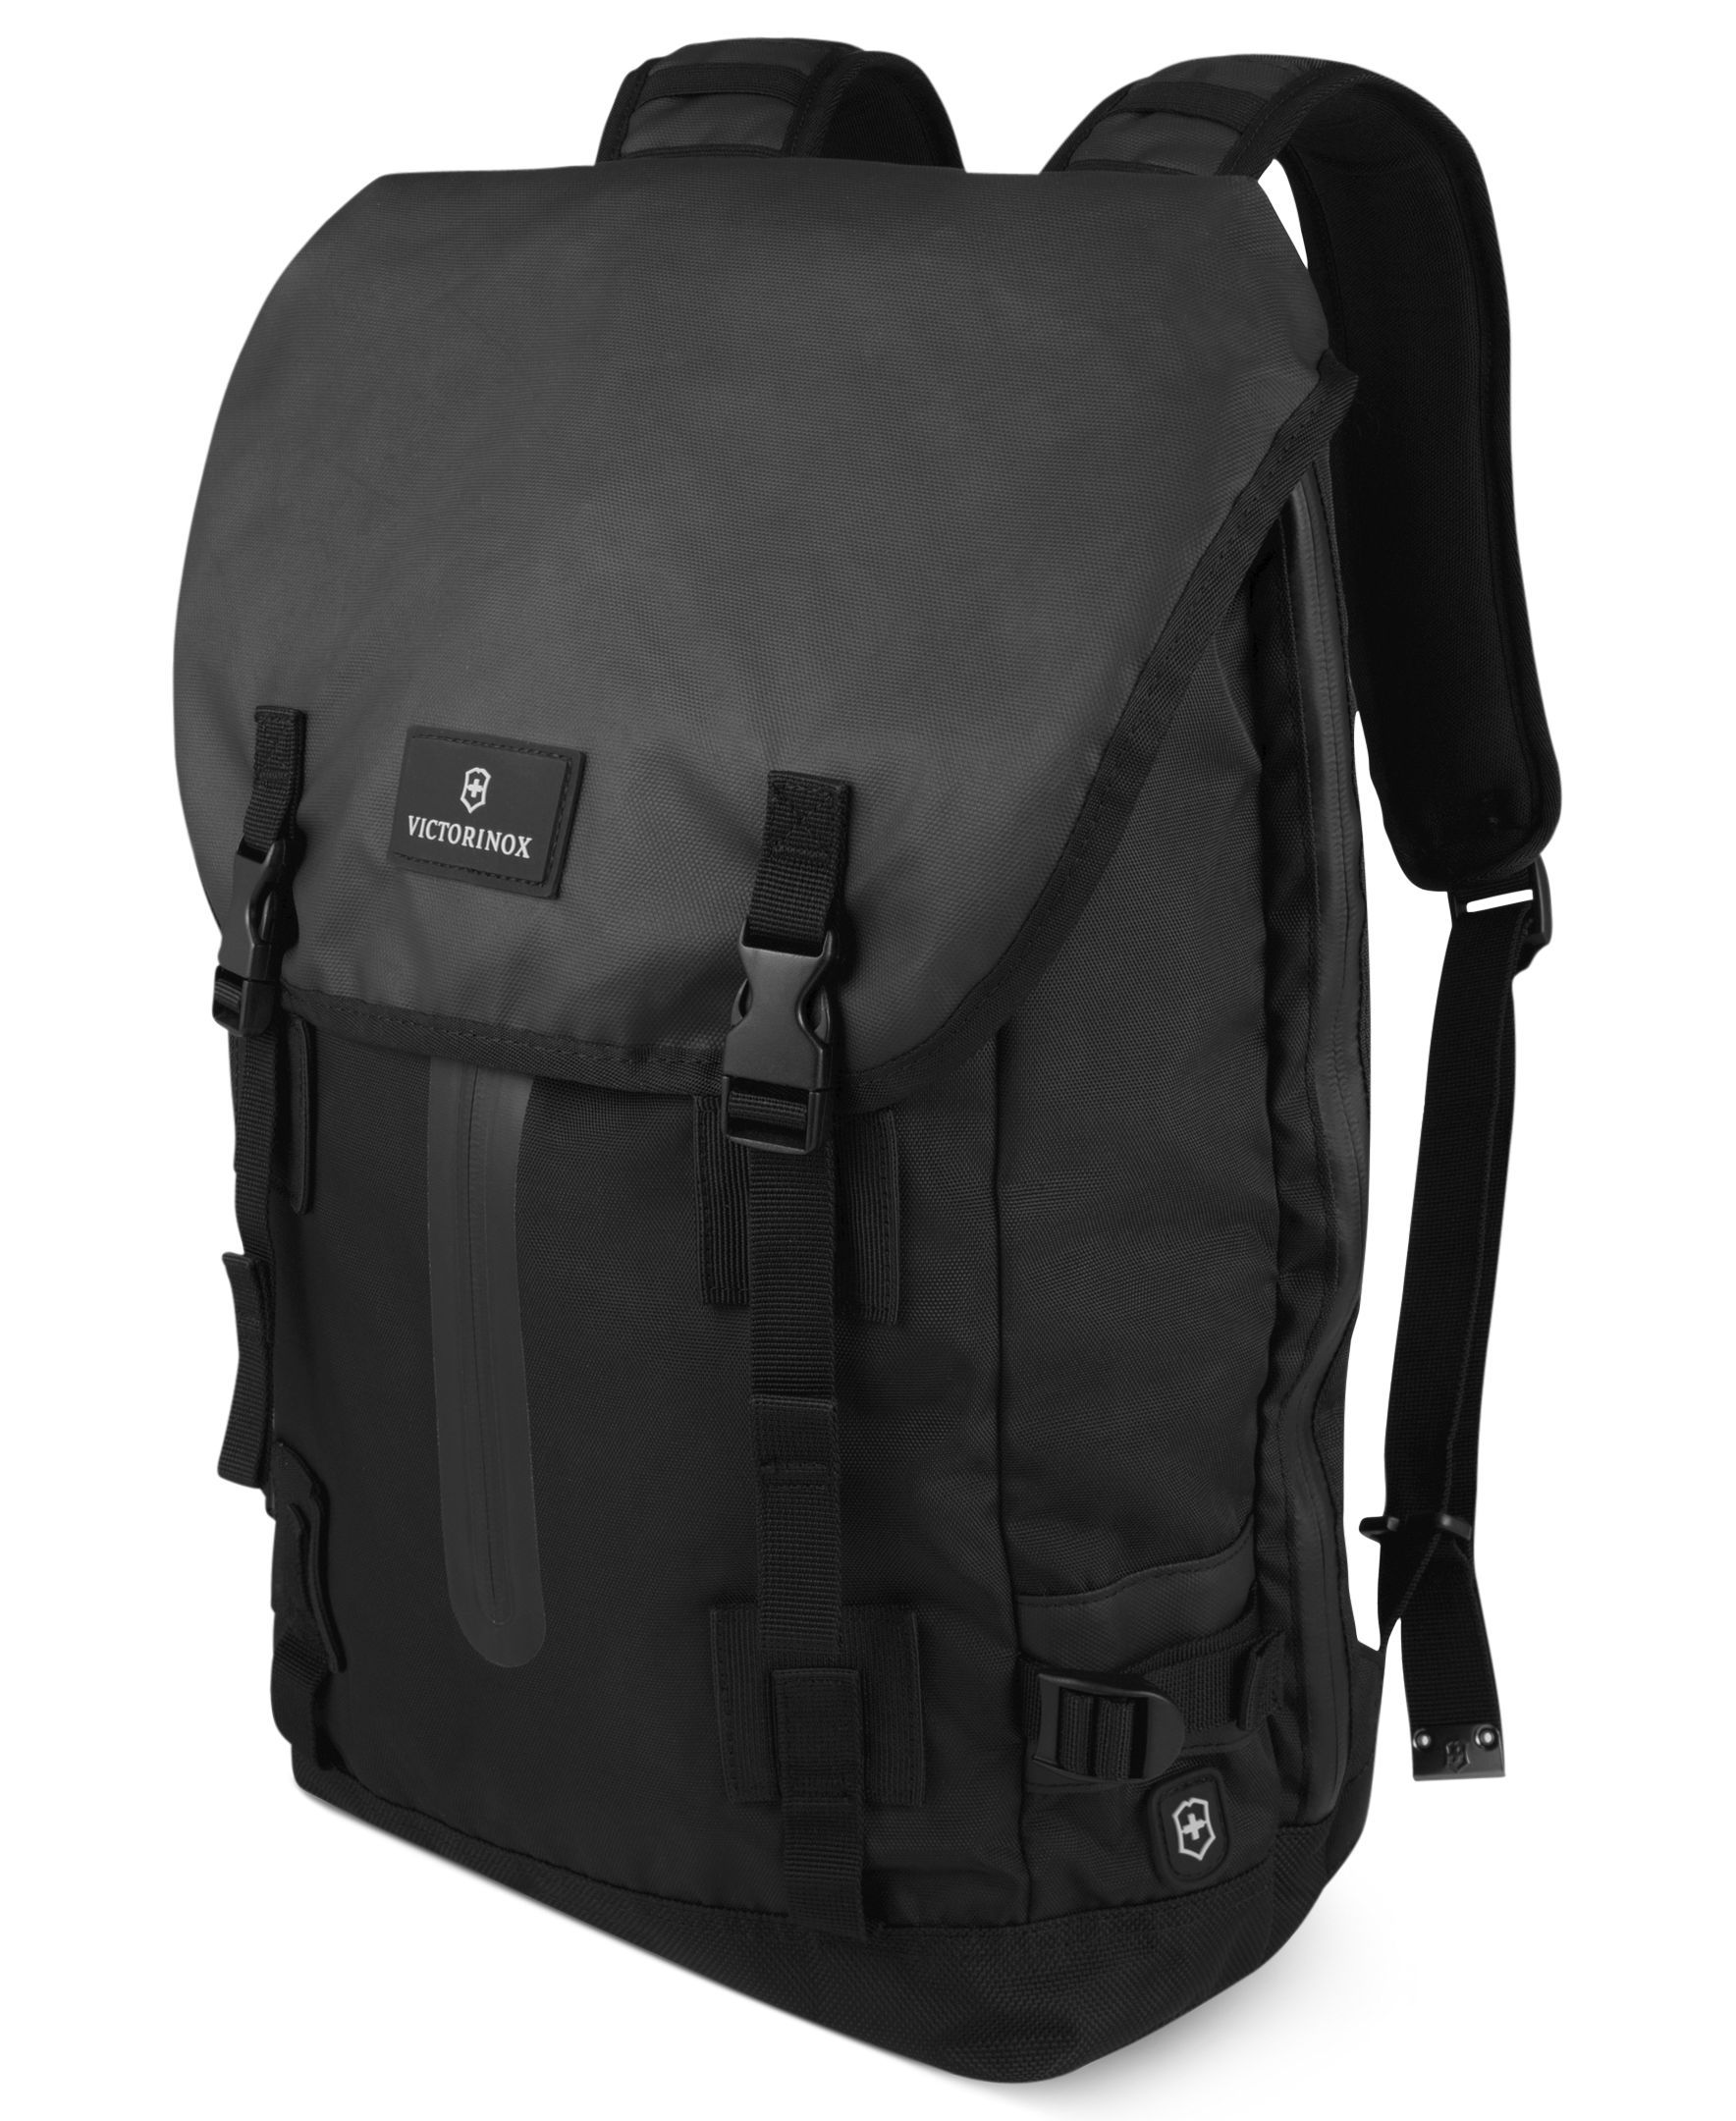 eff5ef4754a5 Victorinox Altmont 3.0 Flapover Laptop Backpack